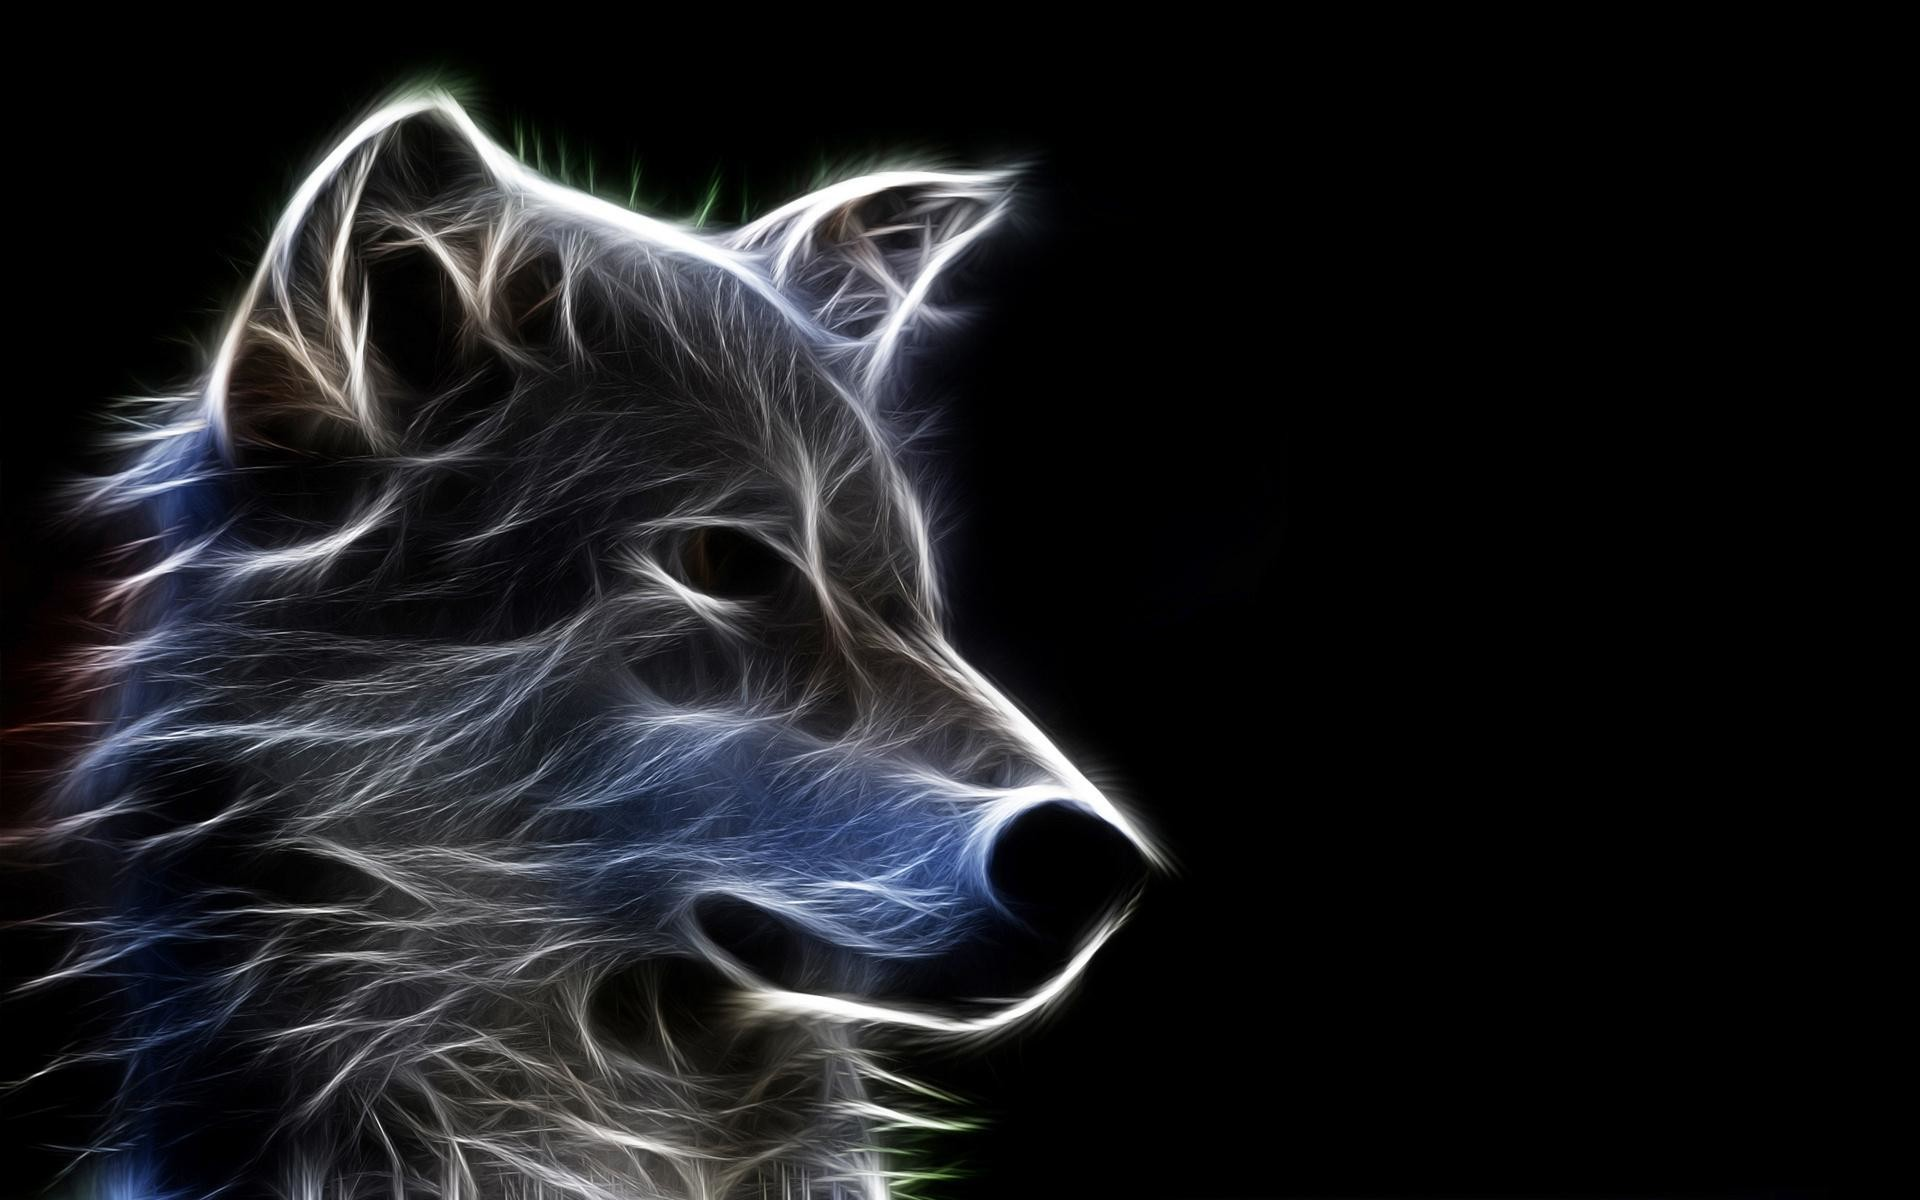 1920x1200 Abstract Wolf Art Wallpapers - http://hdwallpapersf.com/abstract-wolf